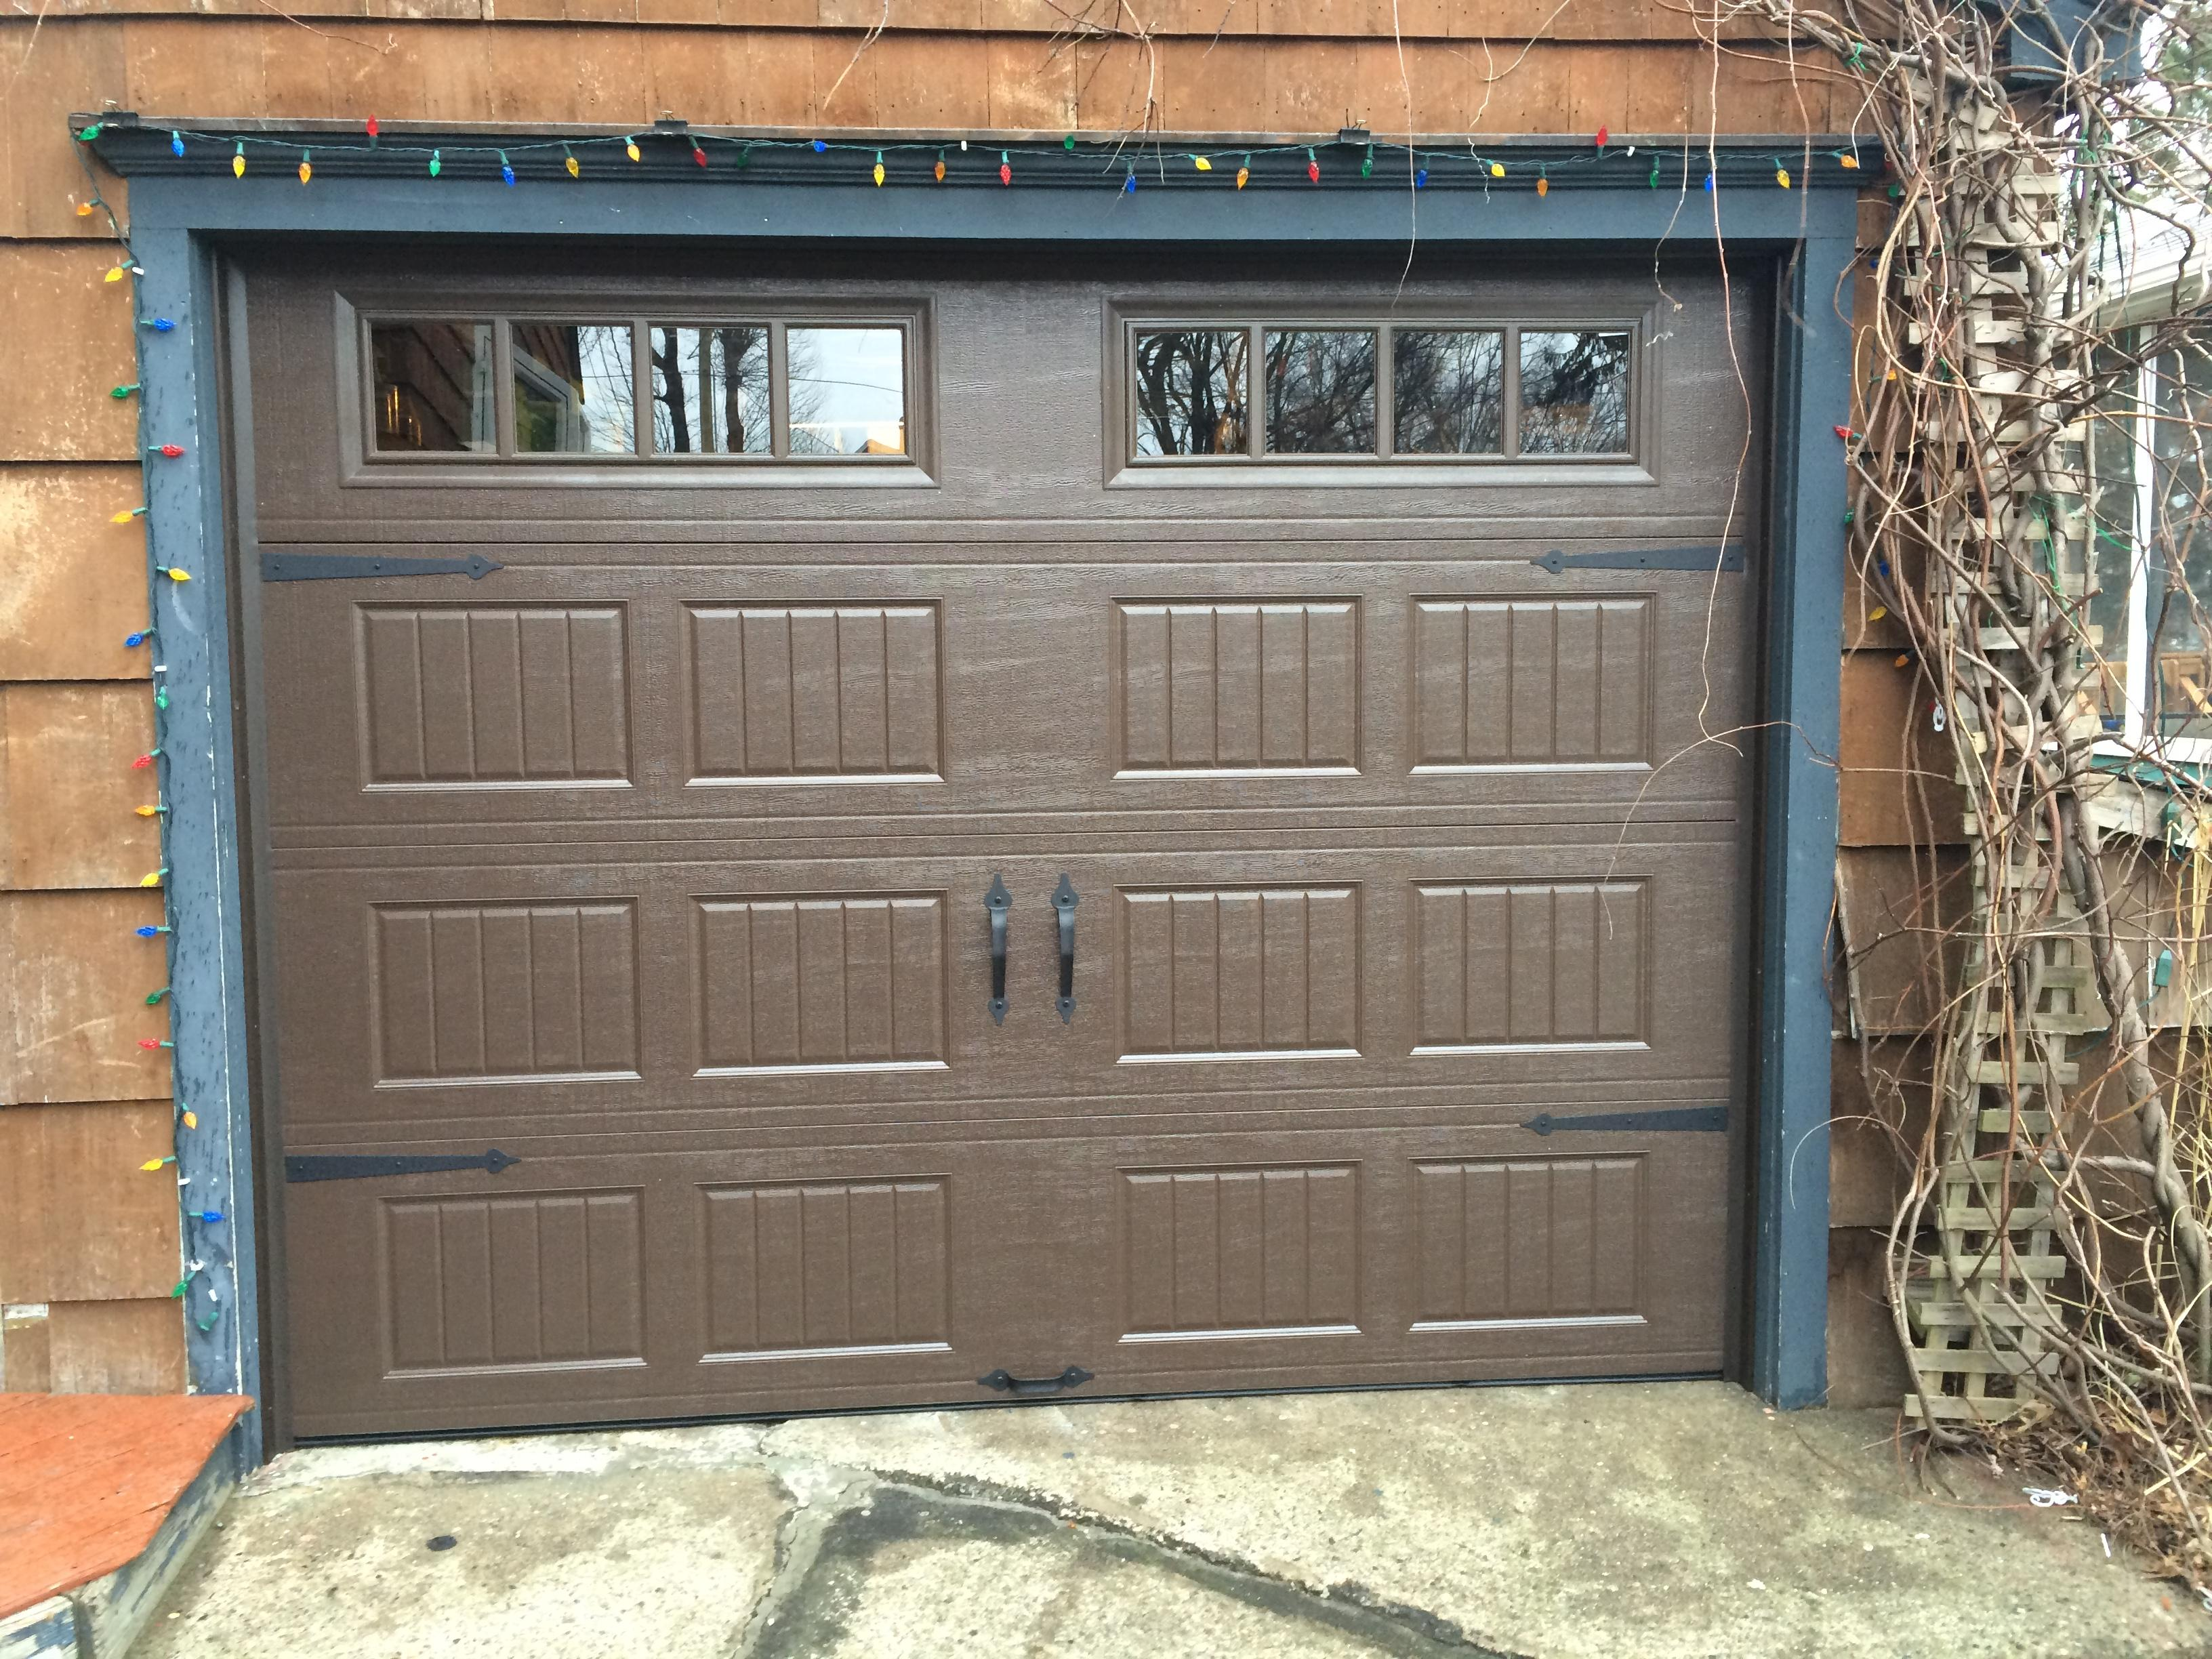 2448 #90623B Overhead Doors Solutions In West Haven CT 06516 ChamberofCommerce  image Overhead Garage Doors Residential Reviews 37133264